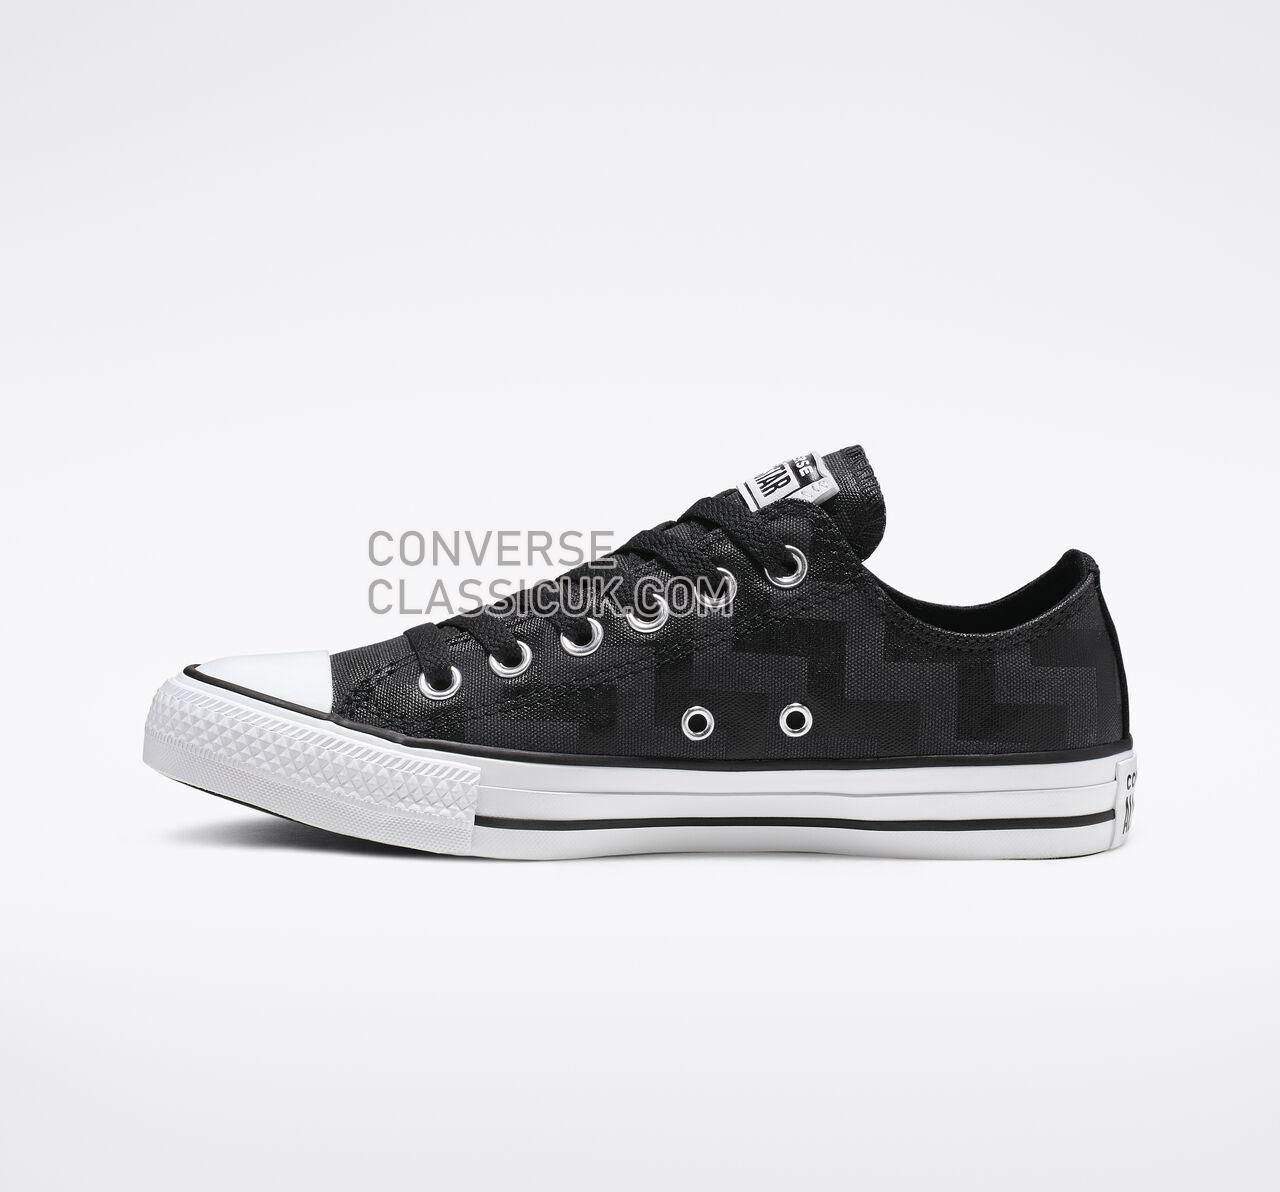 Converse Chuck Taylor All Star Glam Dunk Low Top Womens 565437F Black/White/Black Shoes